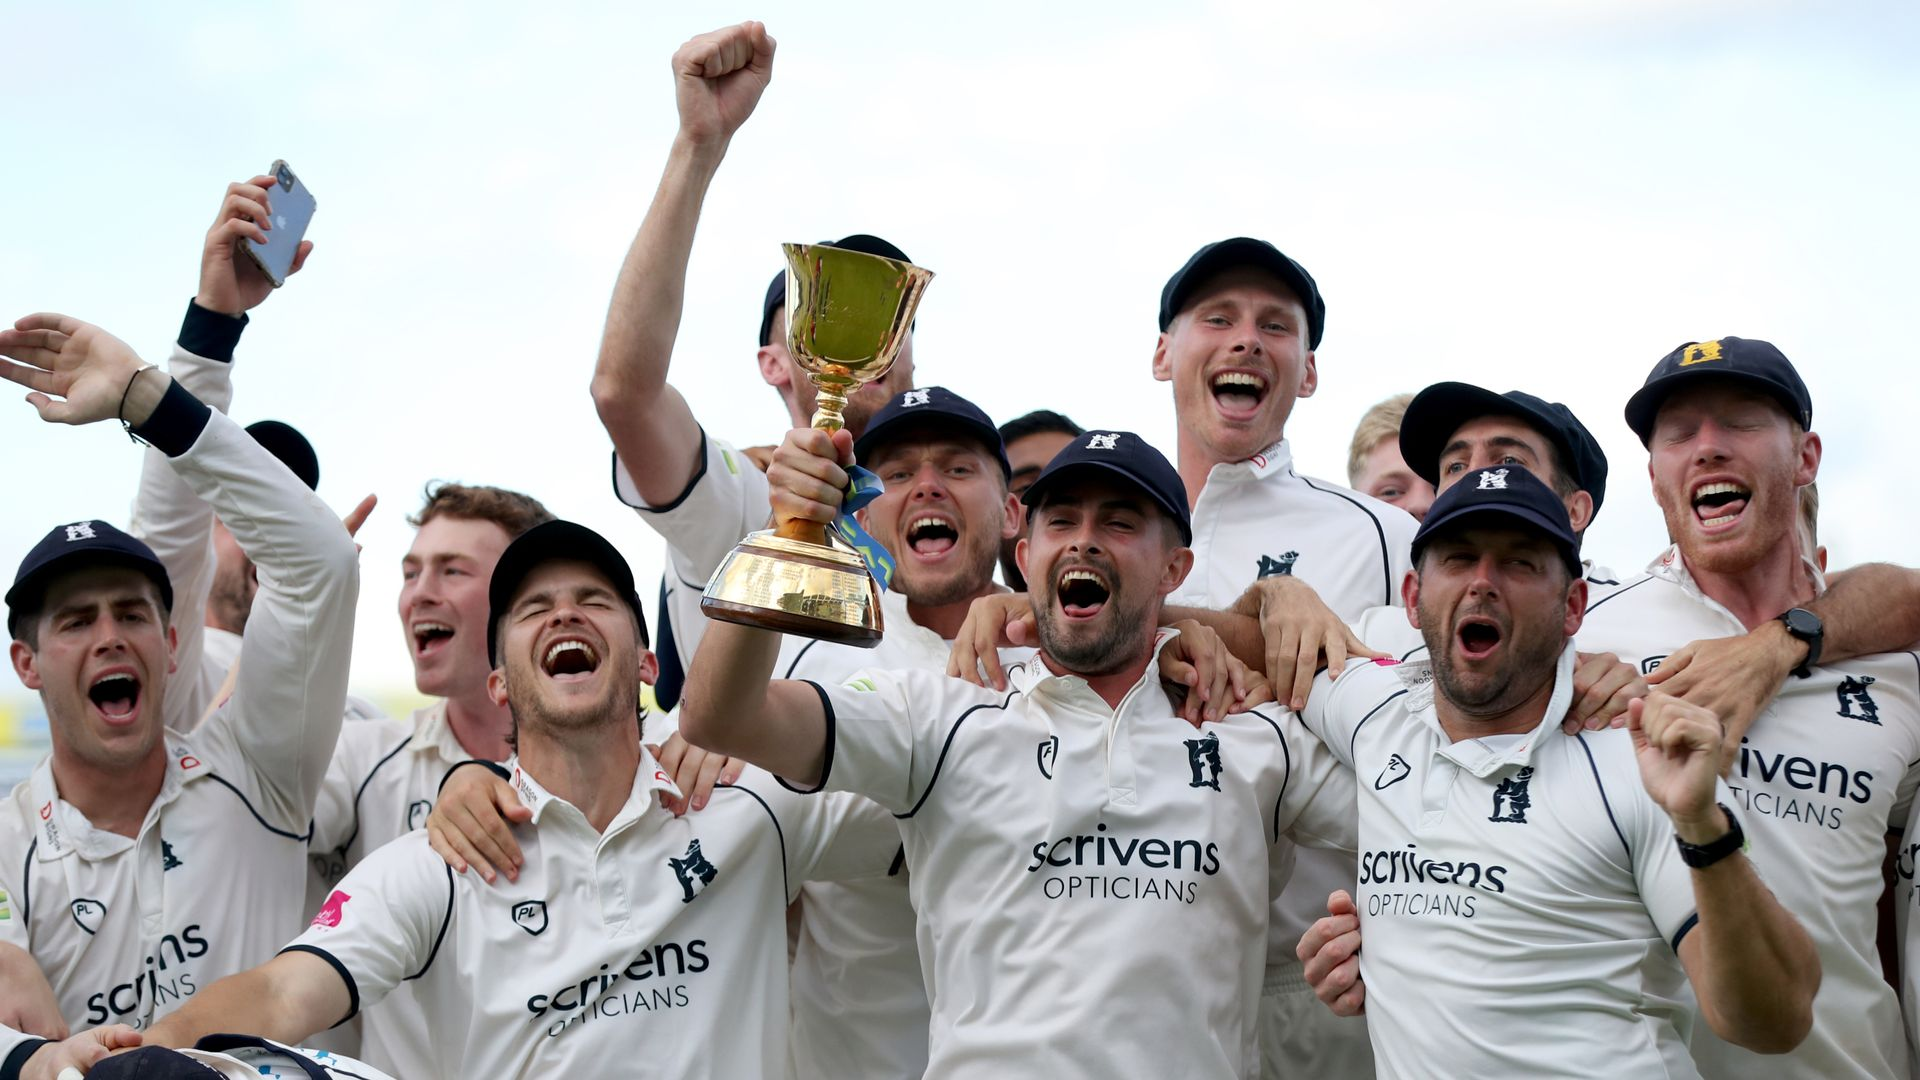 County Championship to return to two divisions